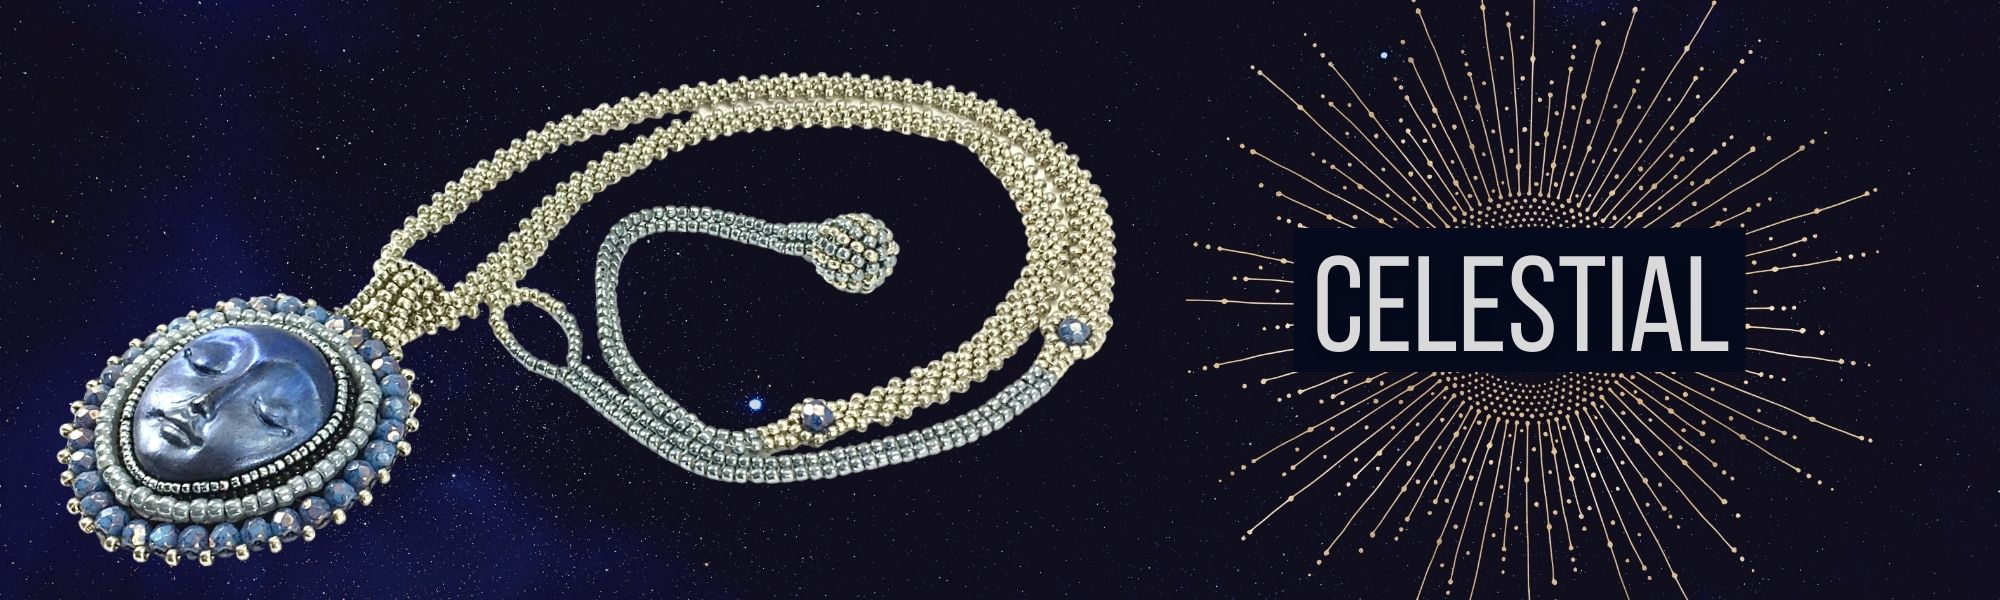 celestial sun and moon jewelry